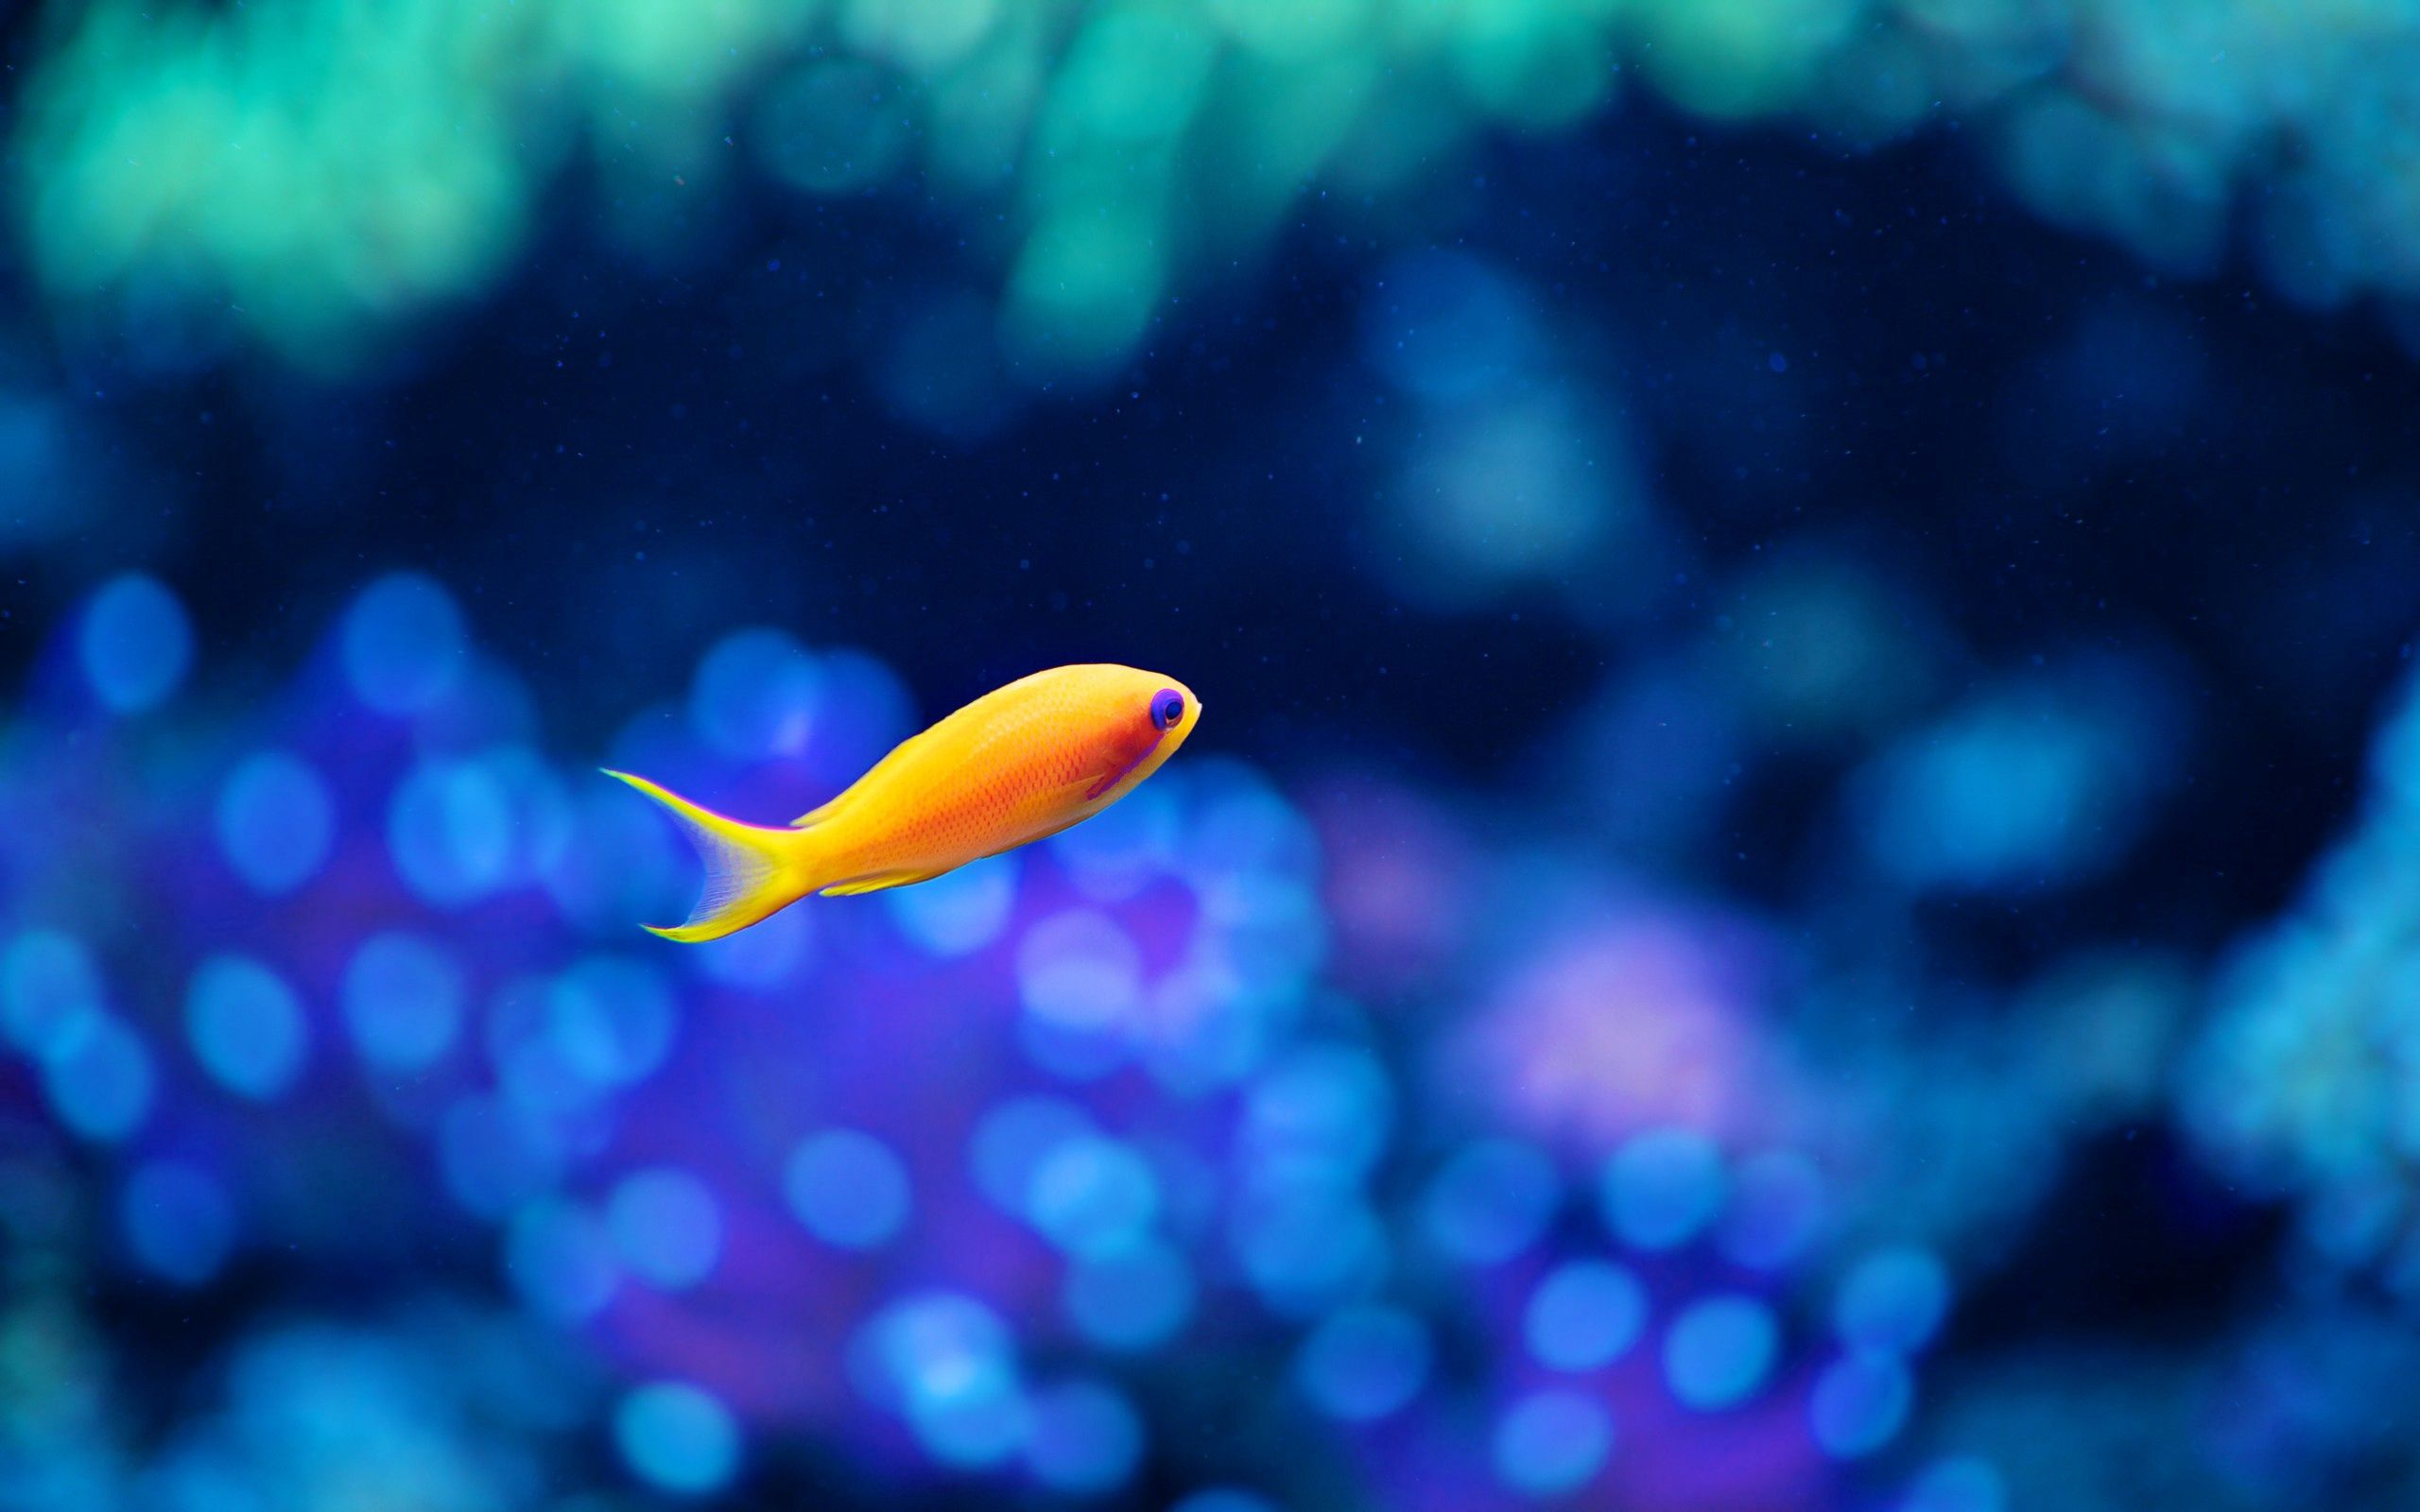 127970 download wallpaper Animals, Small Fish, Fishy, Gold, Golden, To Swim, Swim, Underwater World screensavers and pictures for free